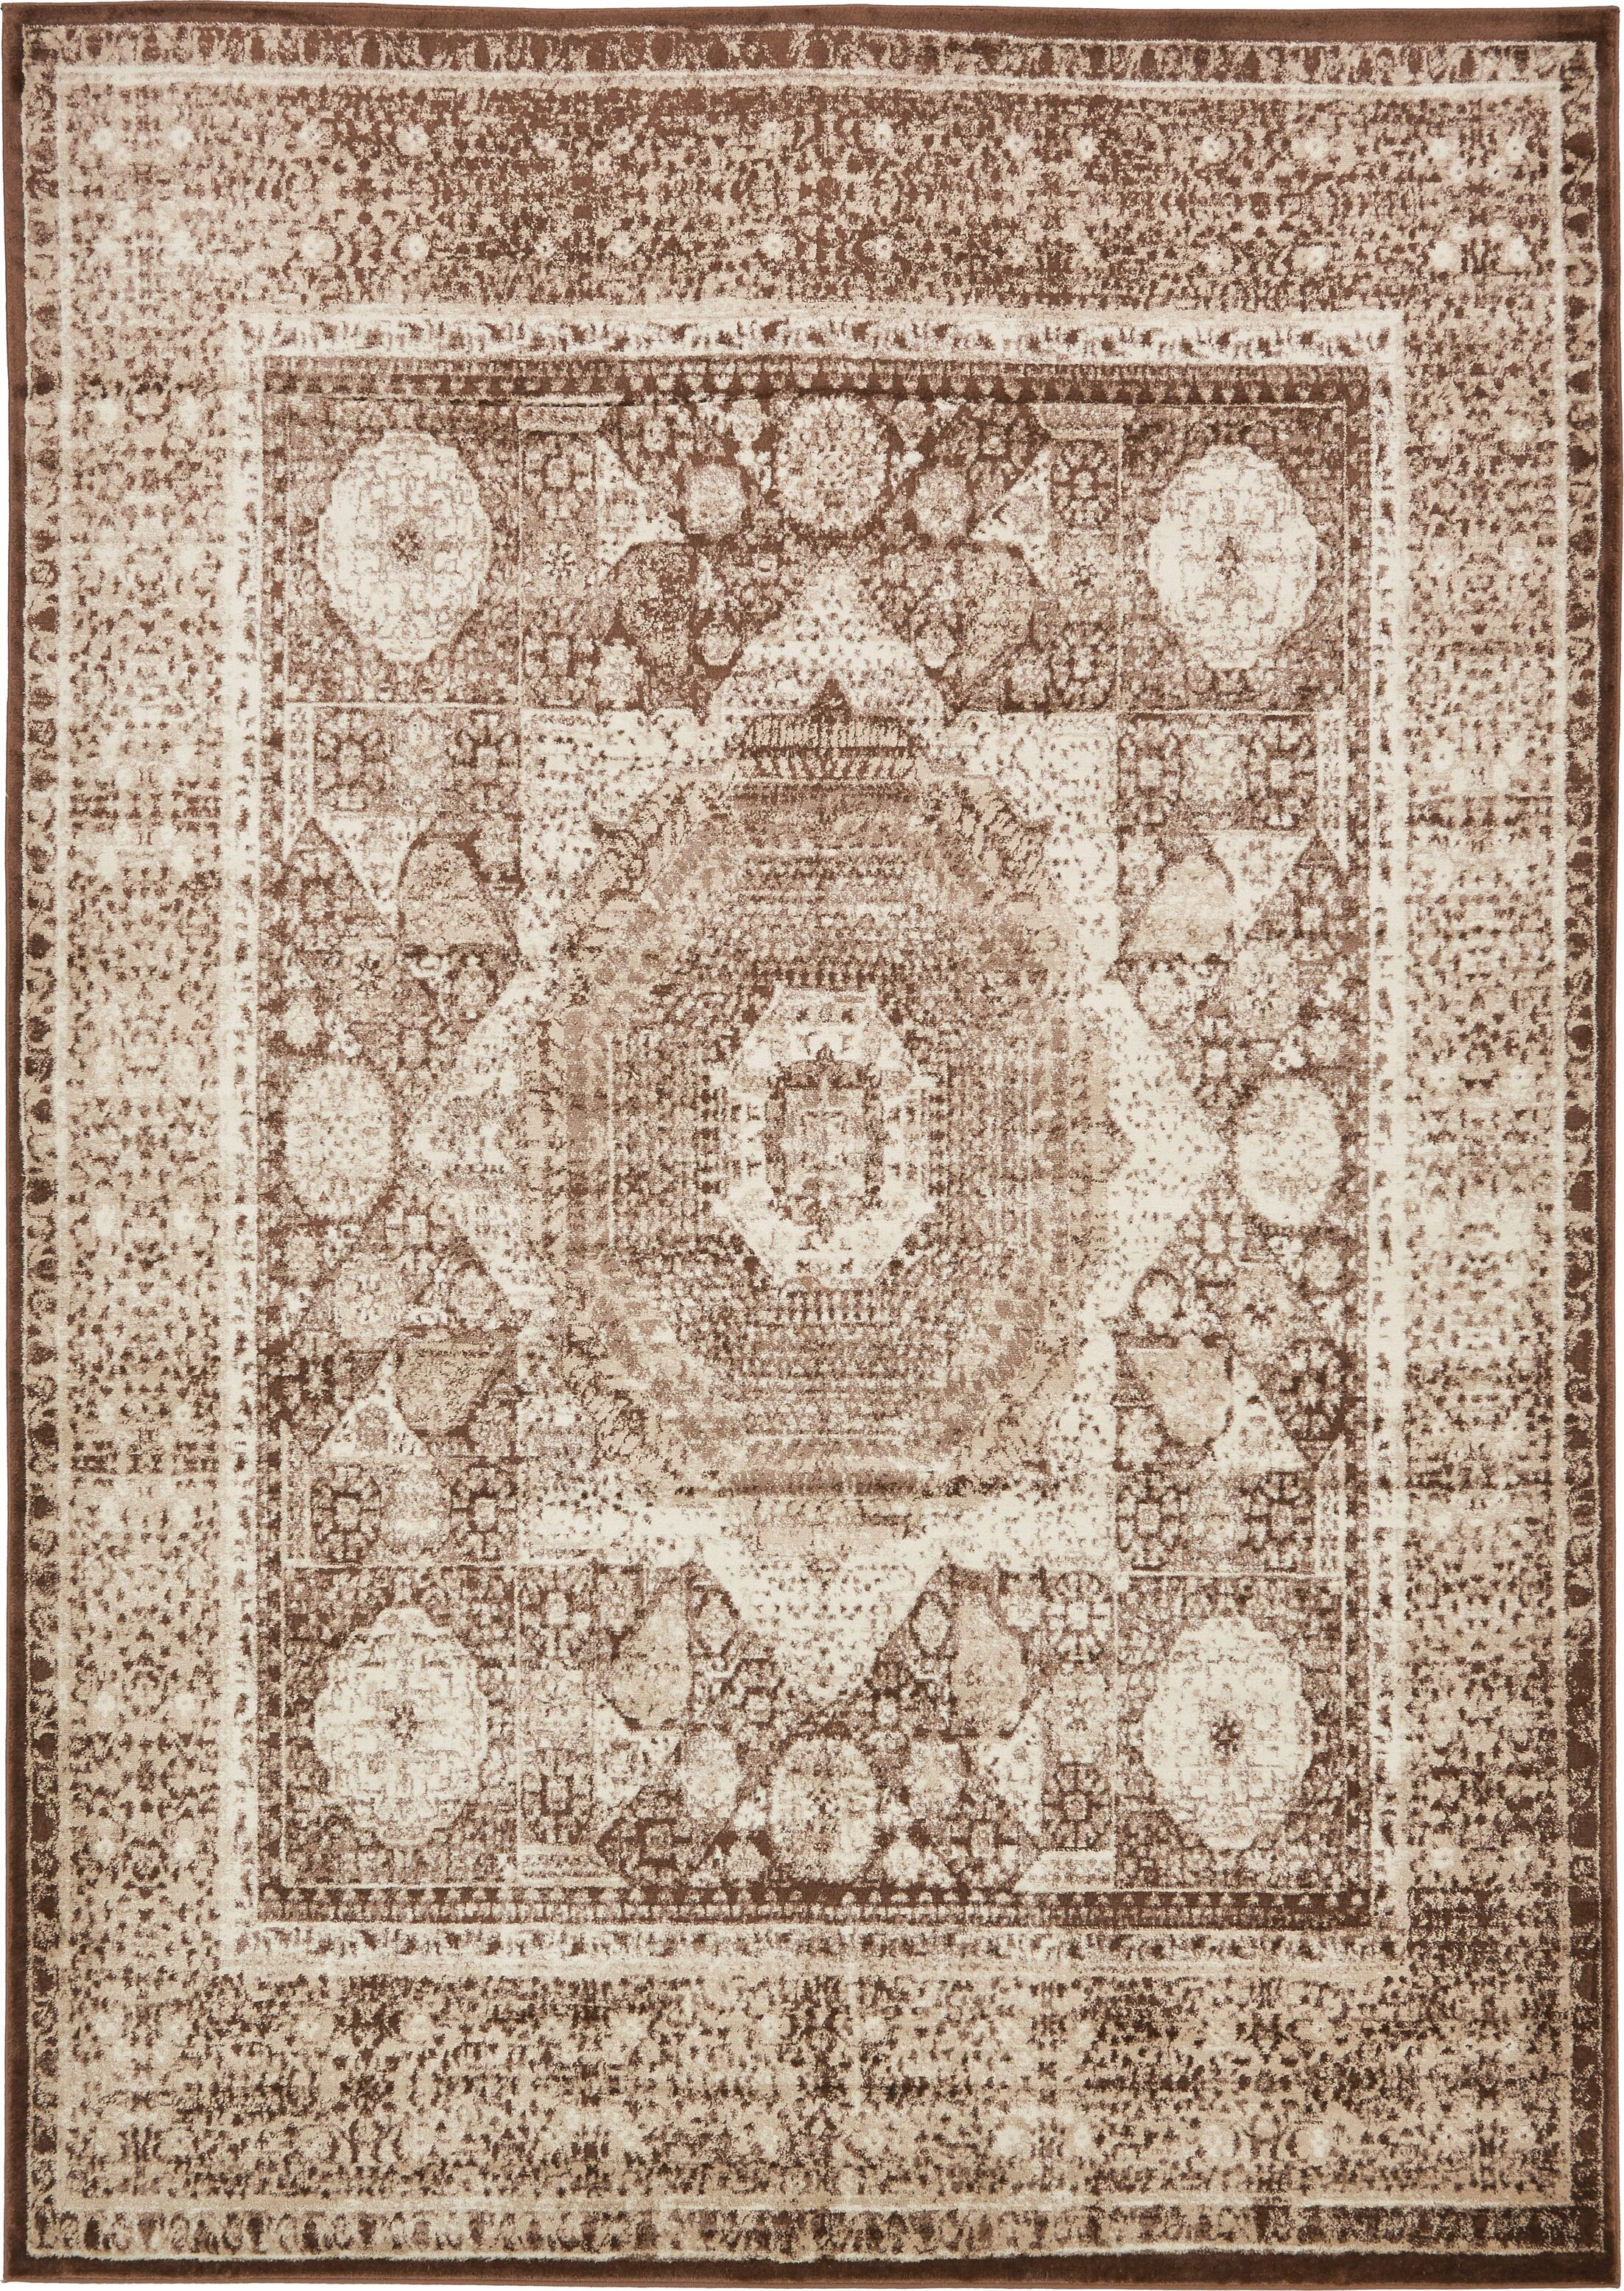 Bolton Brown/Beige Area Rug Rug Size: Rectangle 8' x 11'6